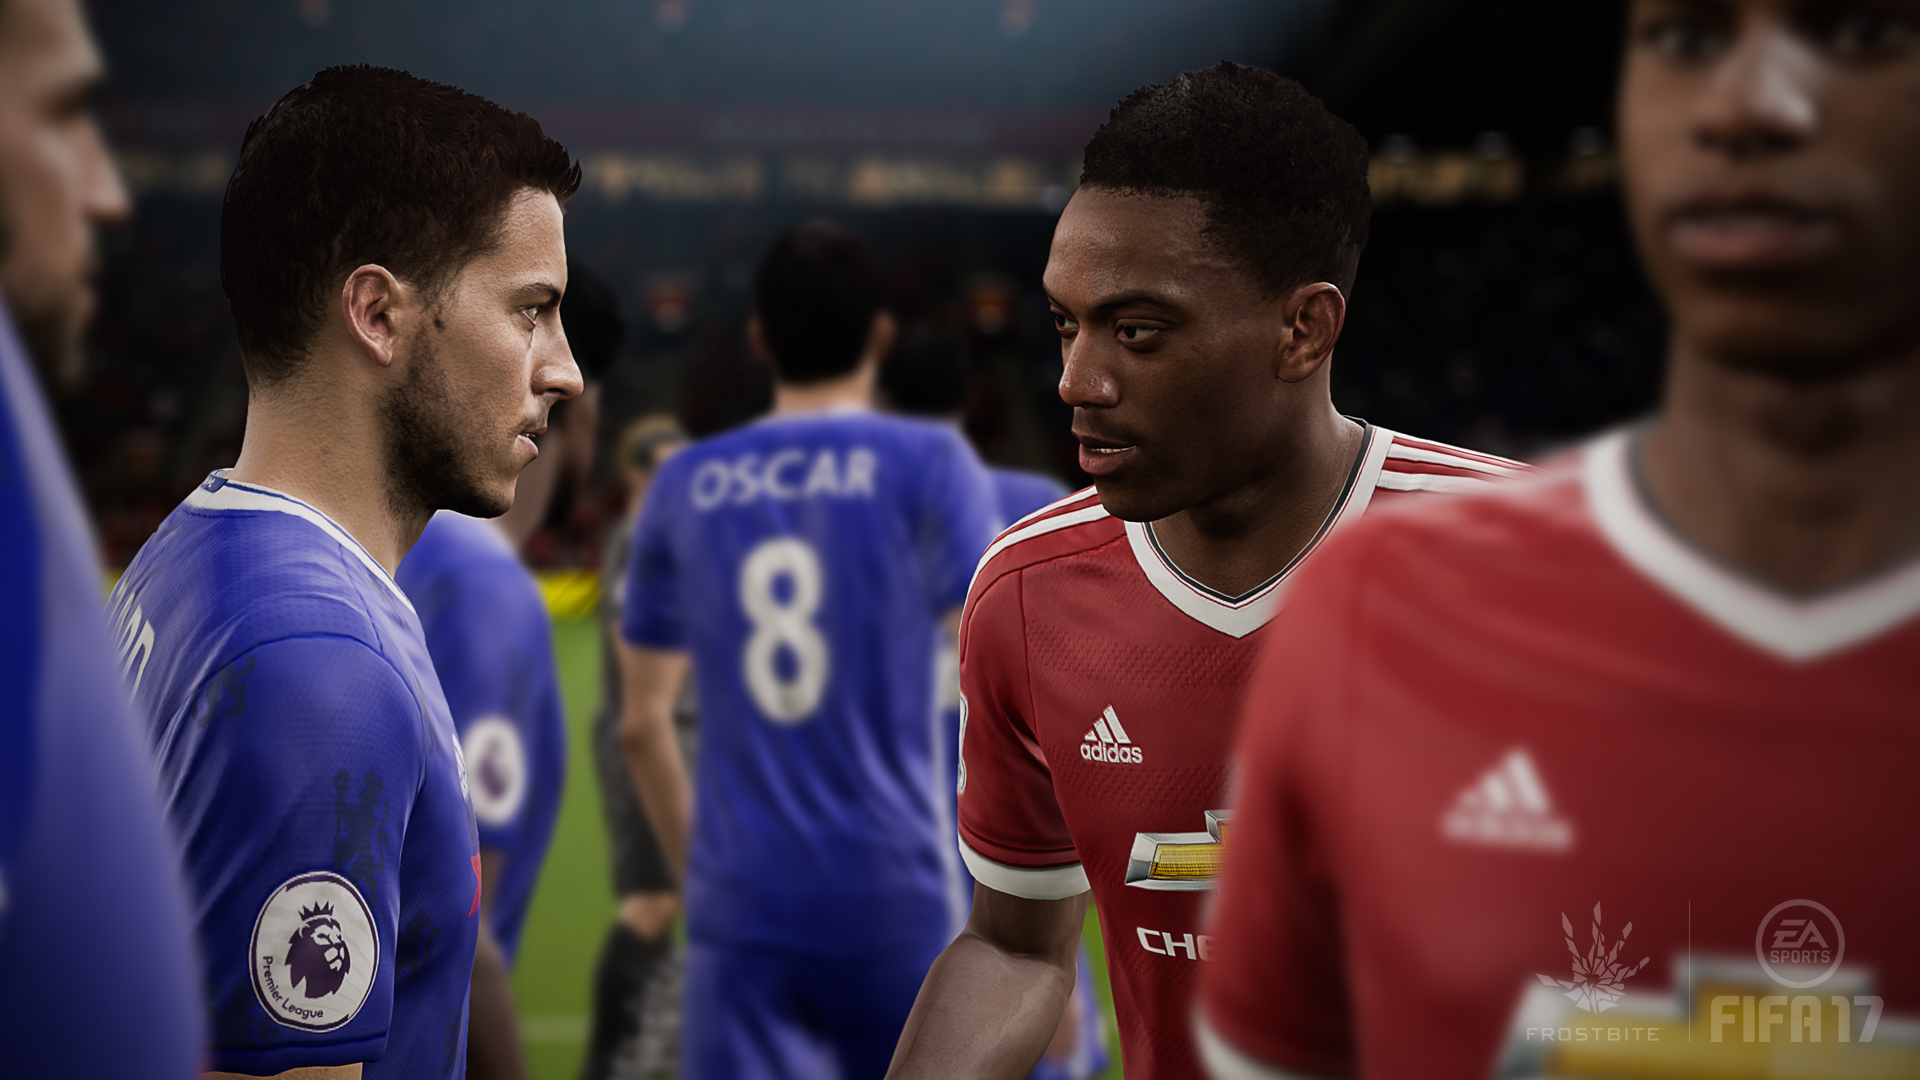 Heres What We Thought About FIFA 17 FIFA17 XB1 PS4 EAPLAY MARTIAL HAZARD LINEUP WM